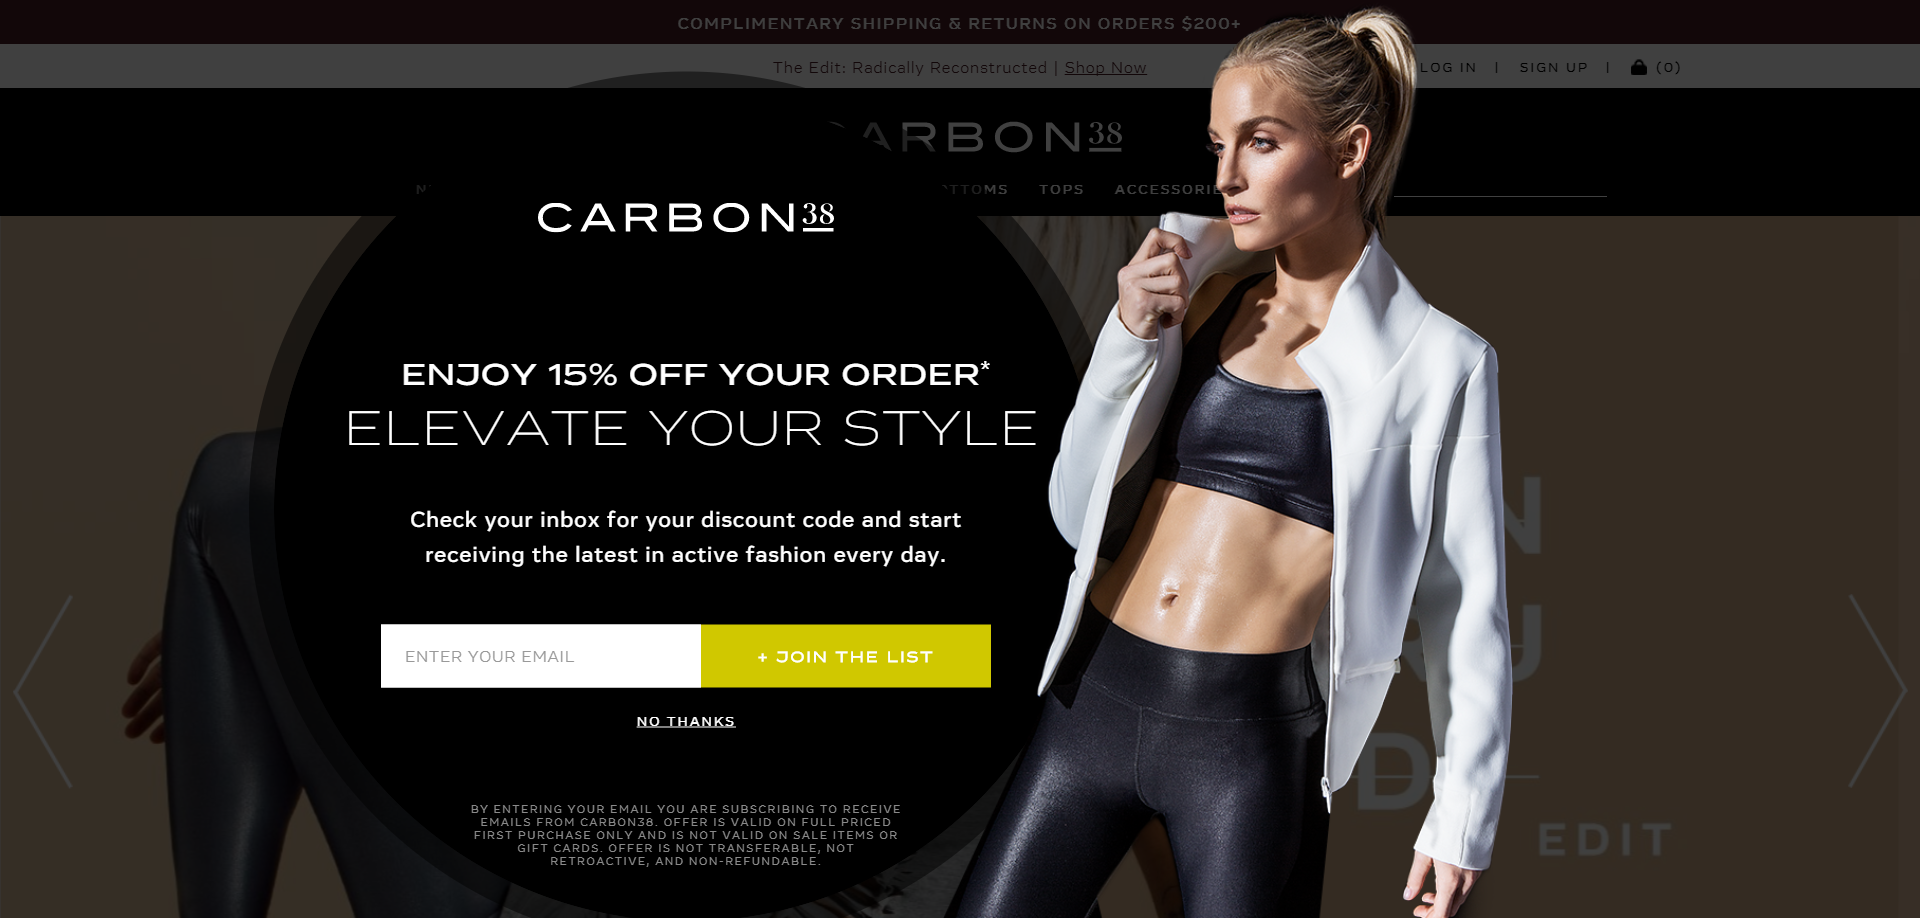 Carbon 38's larger than life pop up